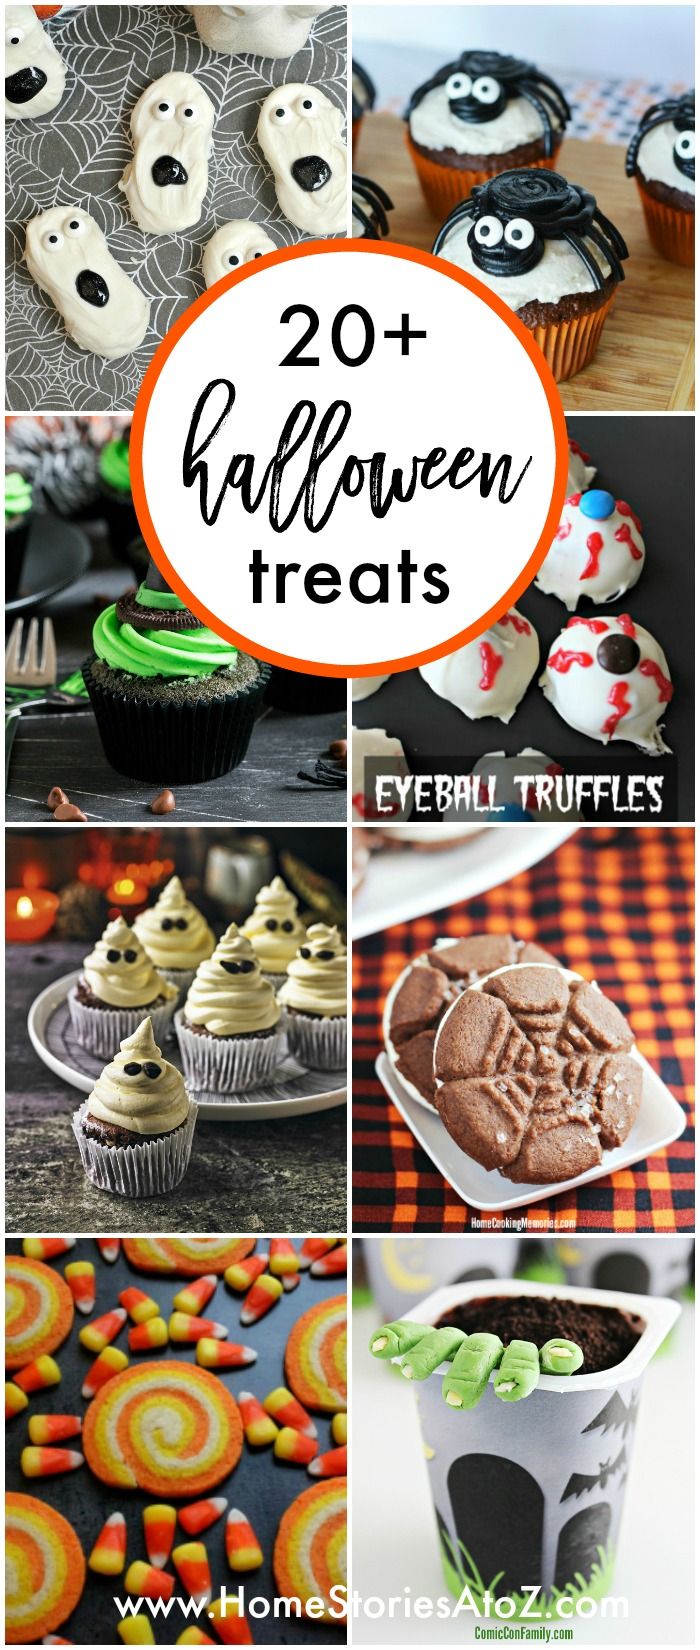 20 Halloween Treat Ideas - Home Stories A to Z